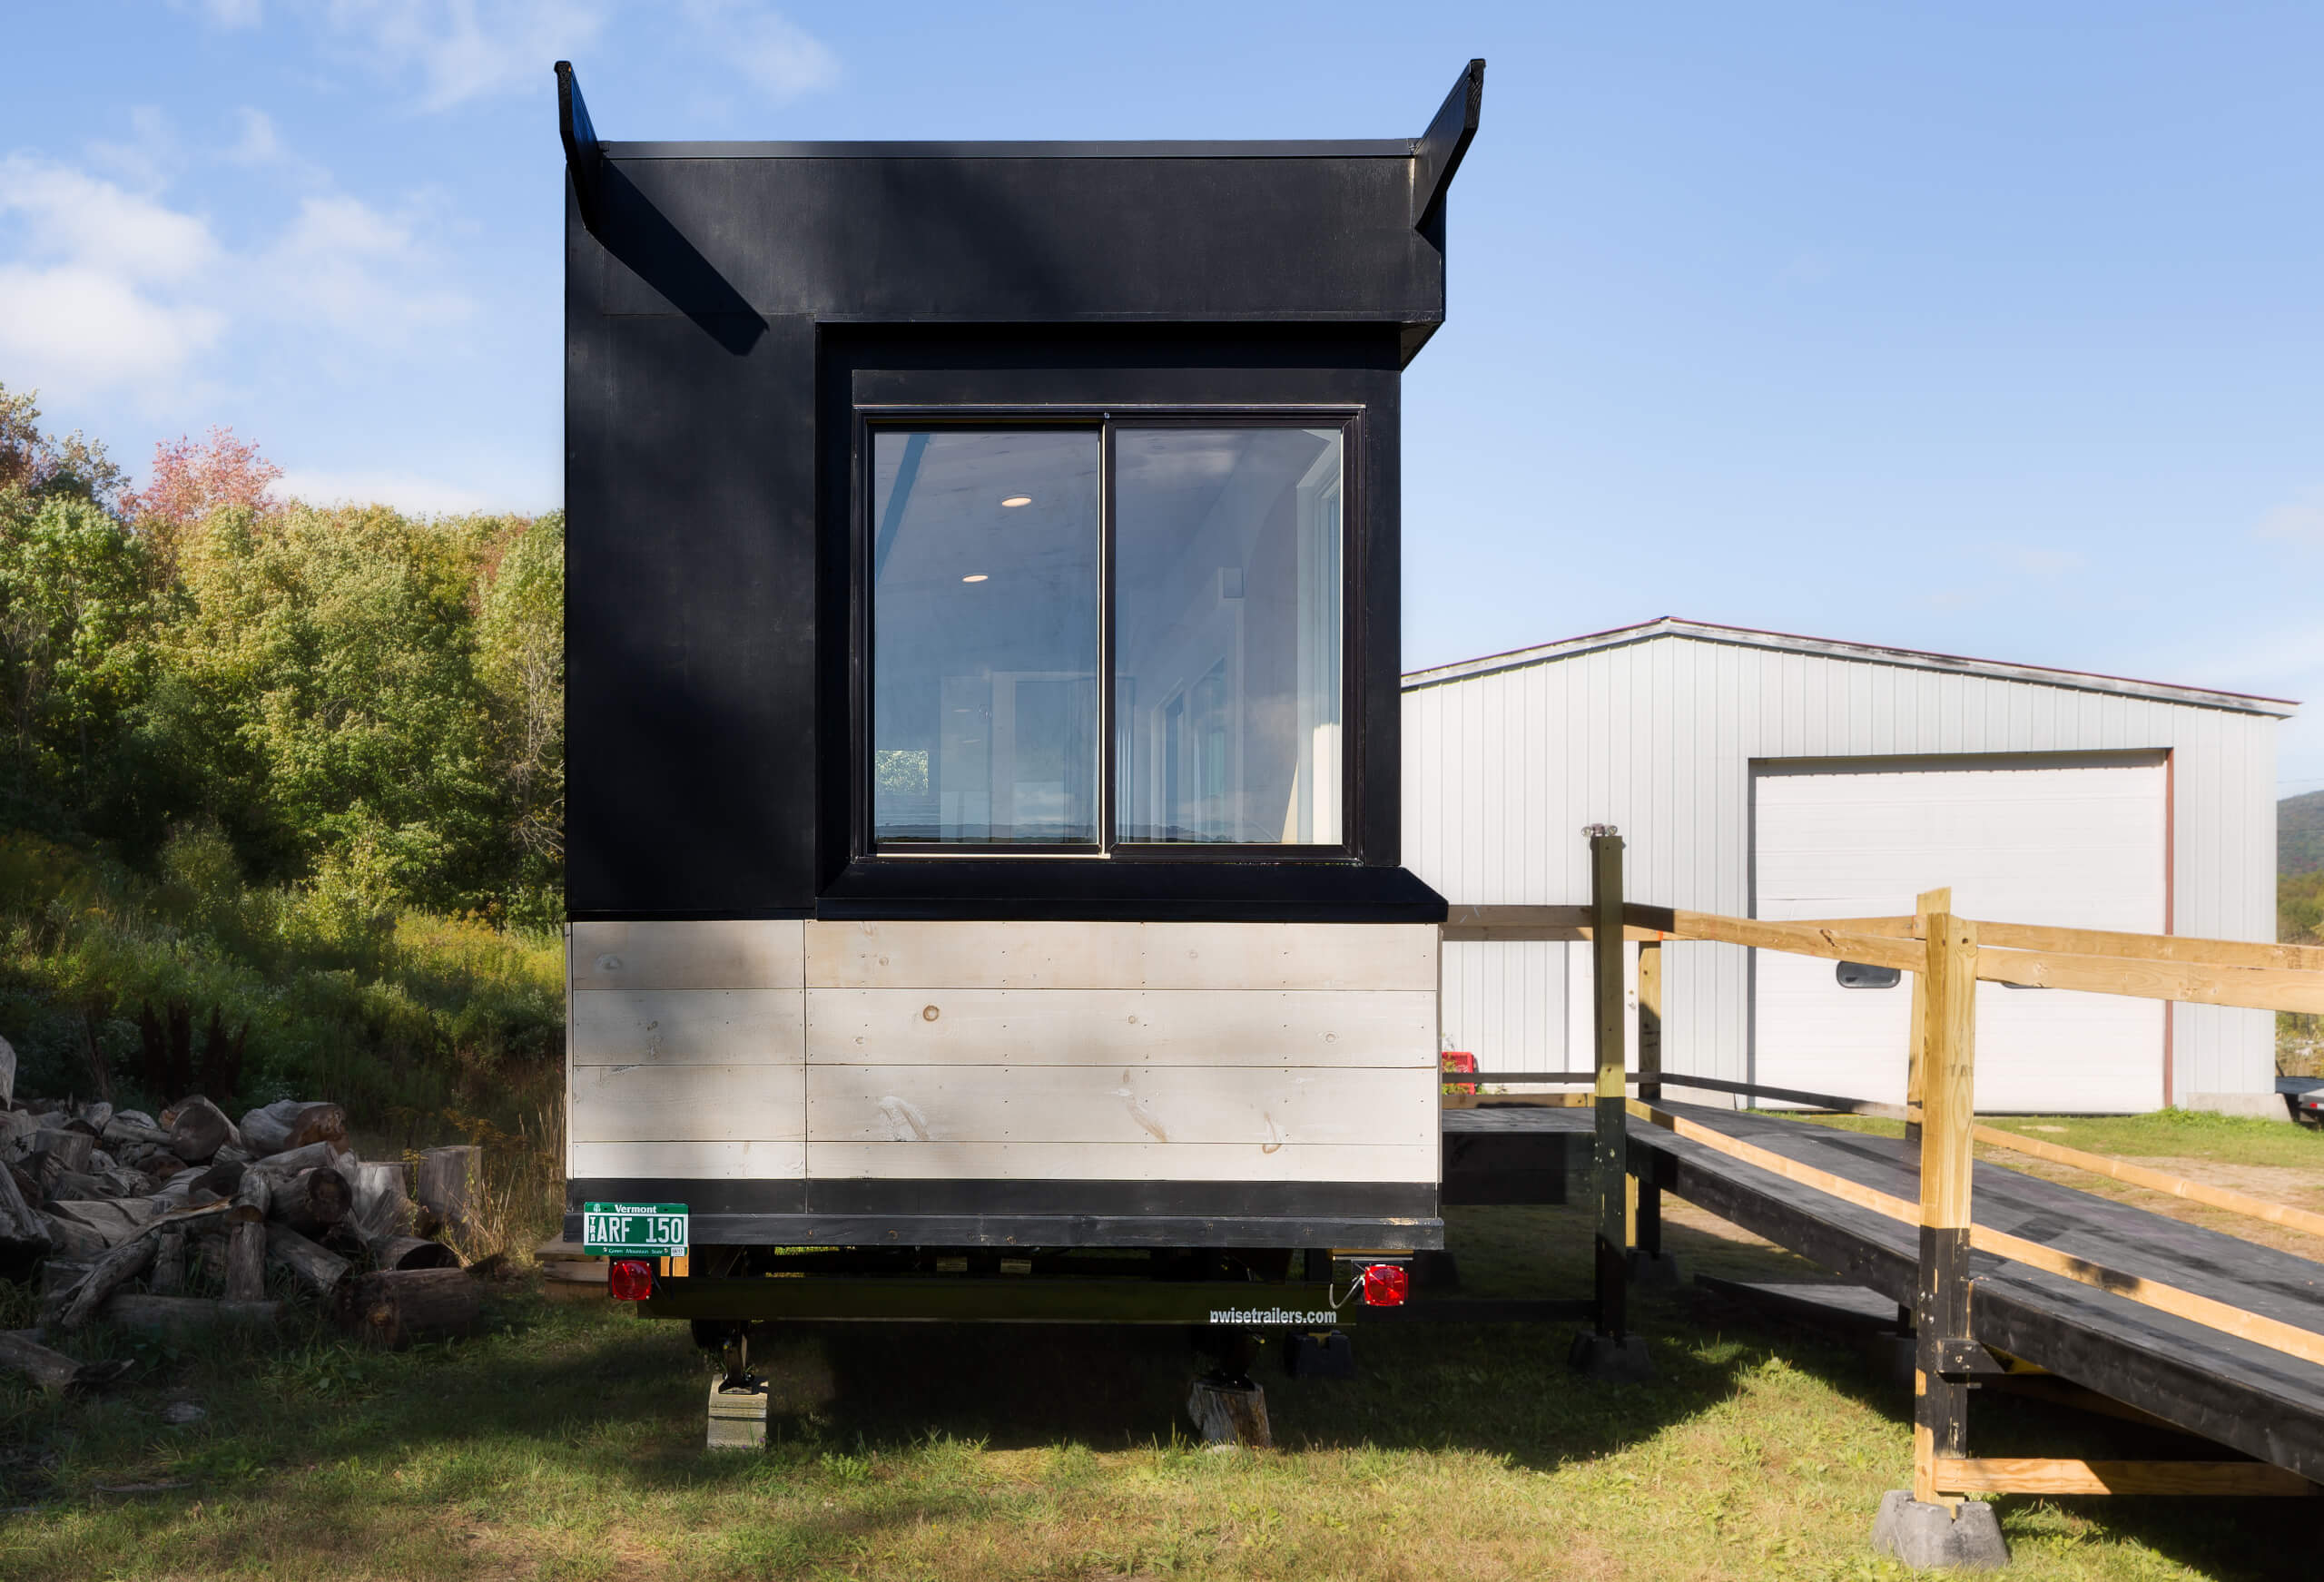 tetraplegique-invente-tiny-house-handicapes-wheel-pad-fauteuil-roulant-linesync-tiny-home-wheels-wheelchair-friendly-facade-exterior-outside-caravan-black-wood-window-rustic-country-modern